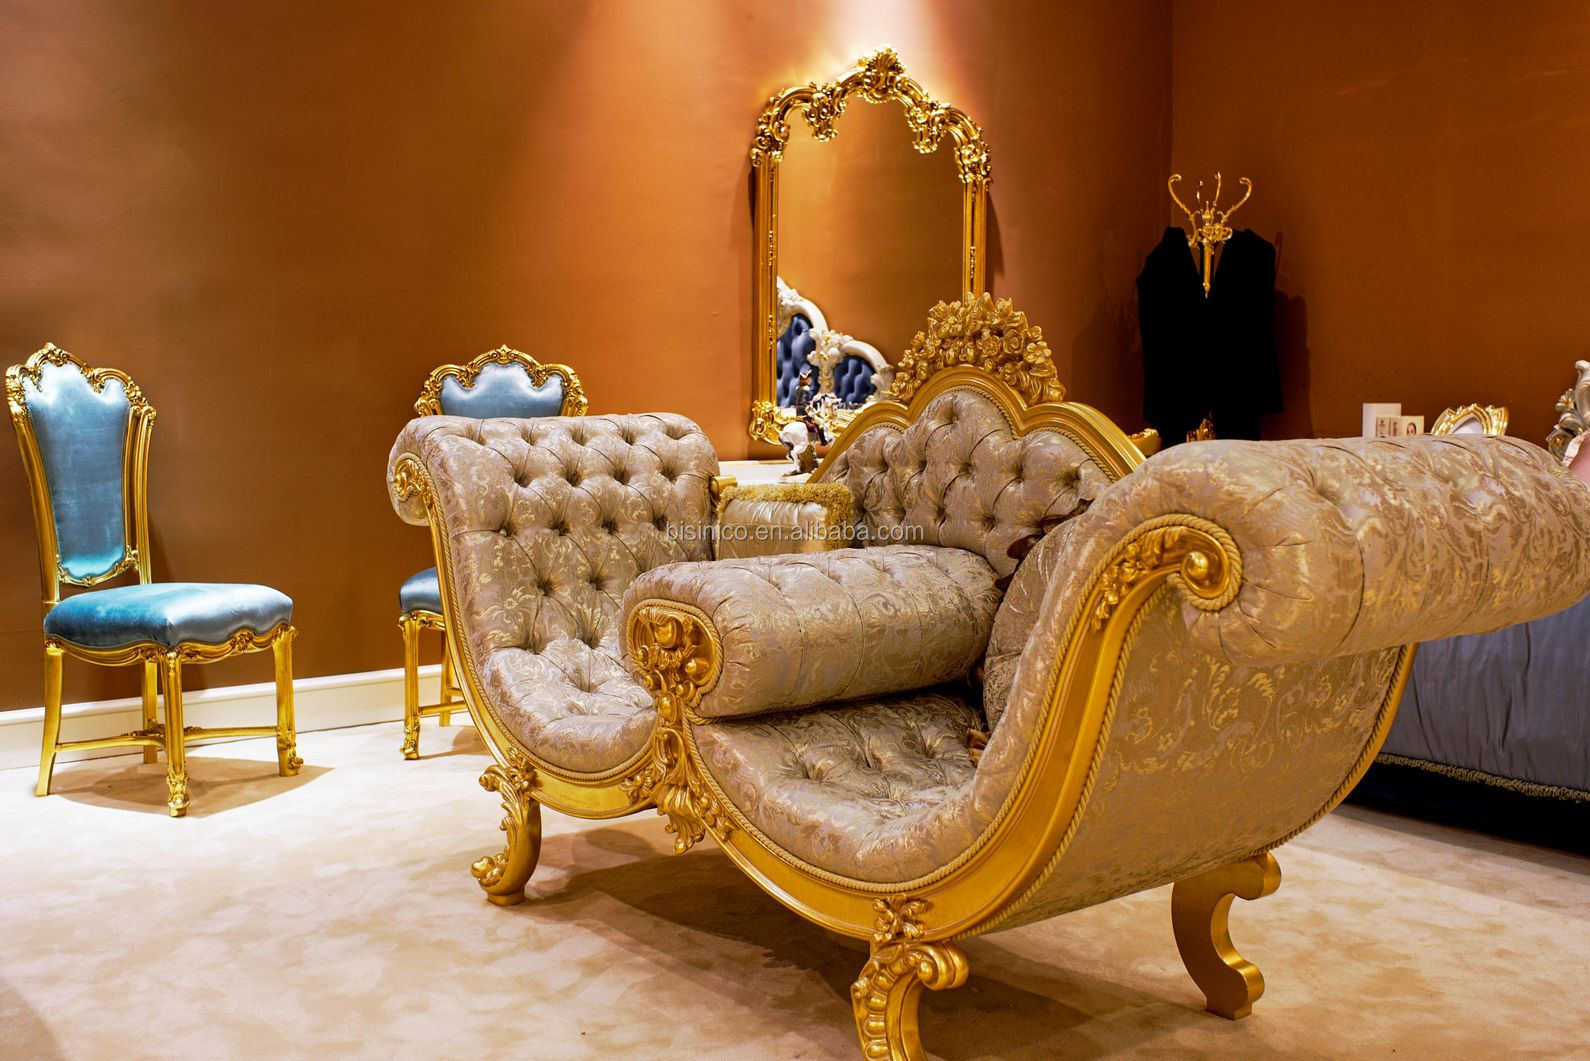 Luxury Antique European Style Bedroom Funiture Set, Golden Carved Bedroom Armchair and Tea Table Set